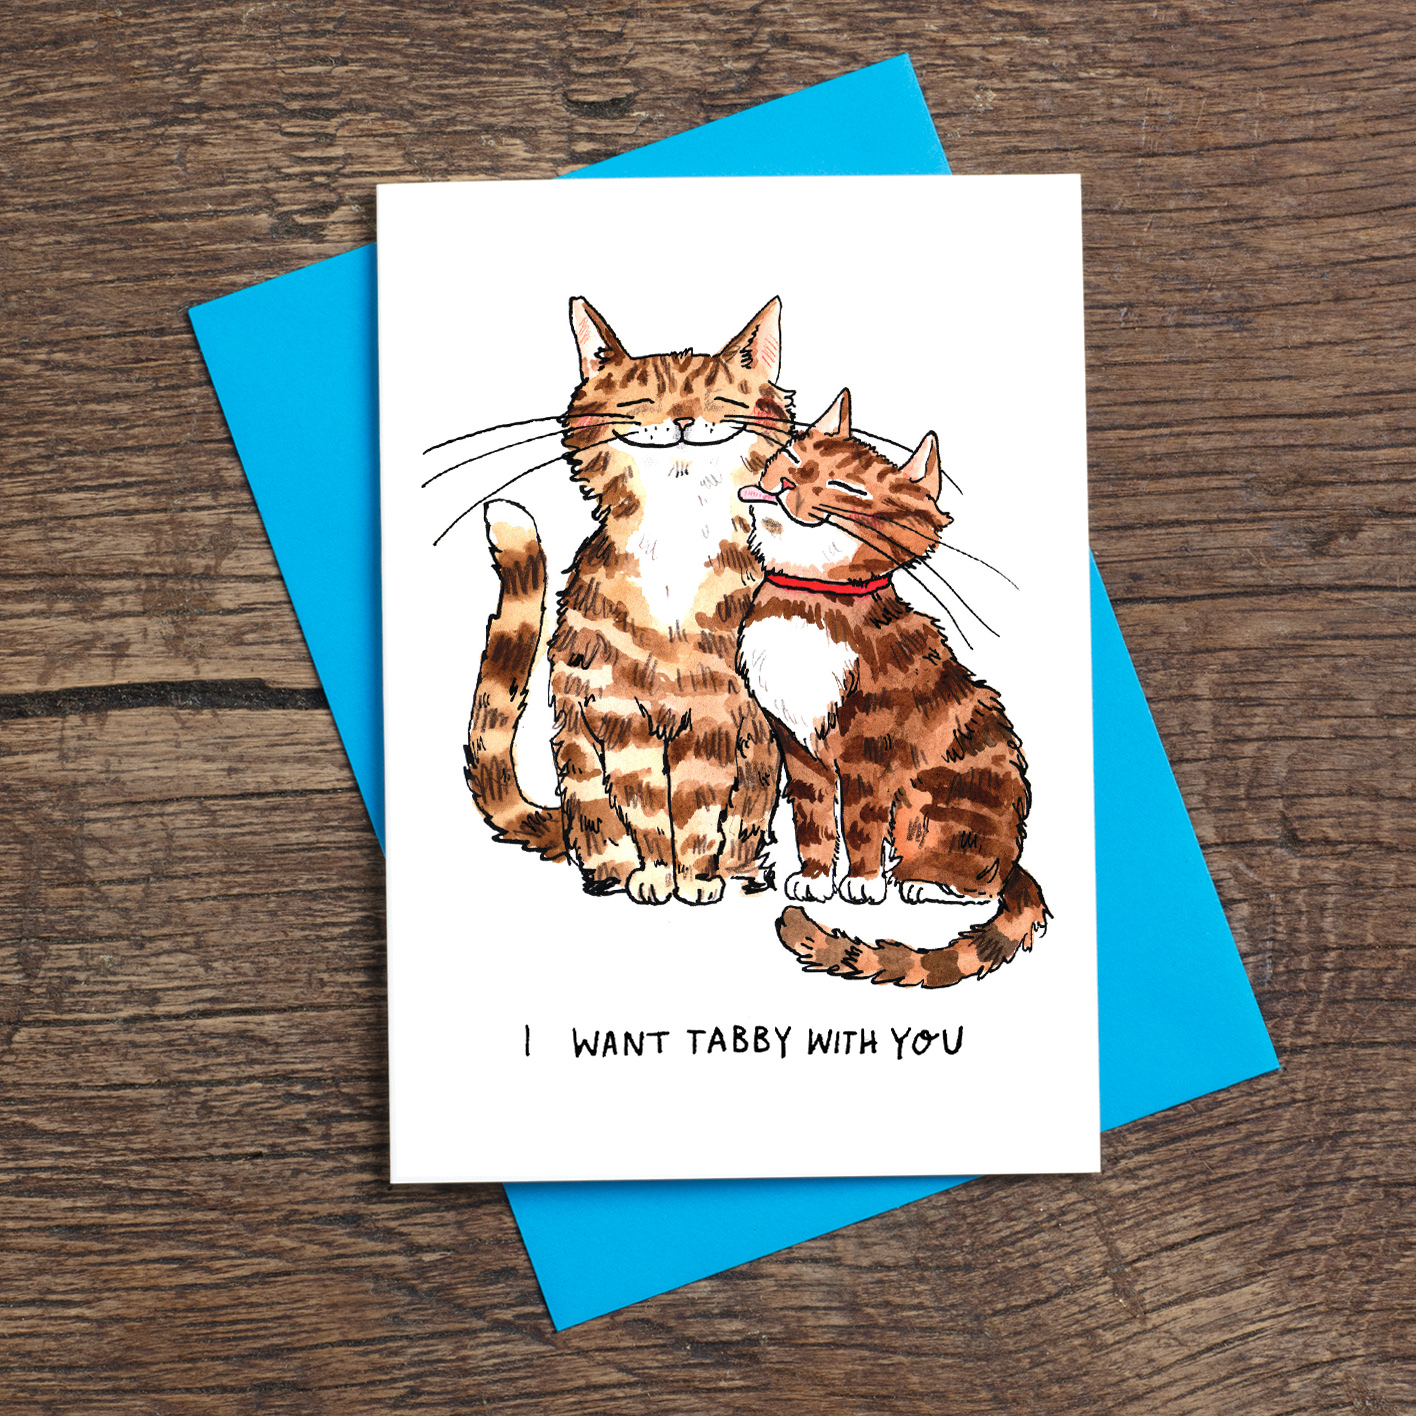 Want-Tabby-With-You_-Cat-pun-romantic-greetings-card_SM70_OT-1